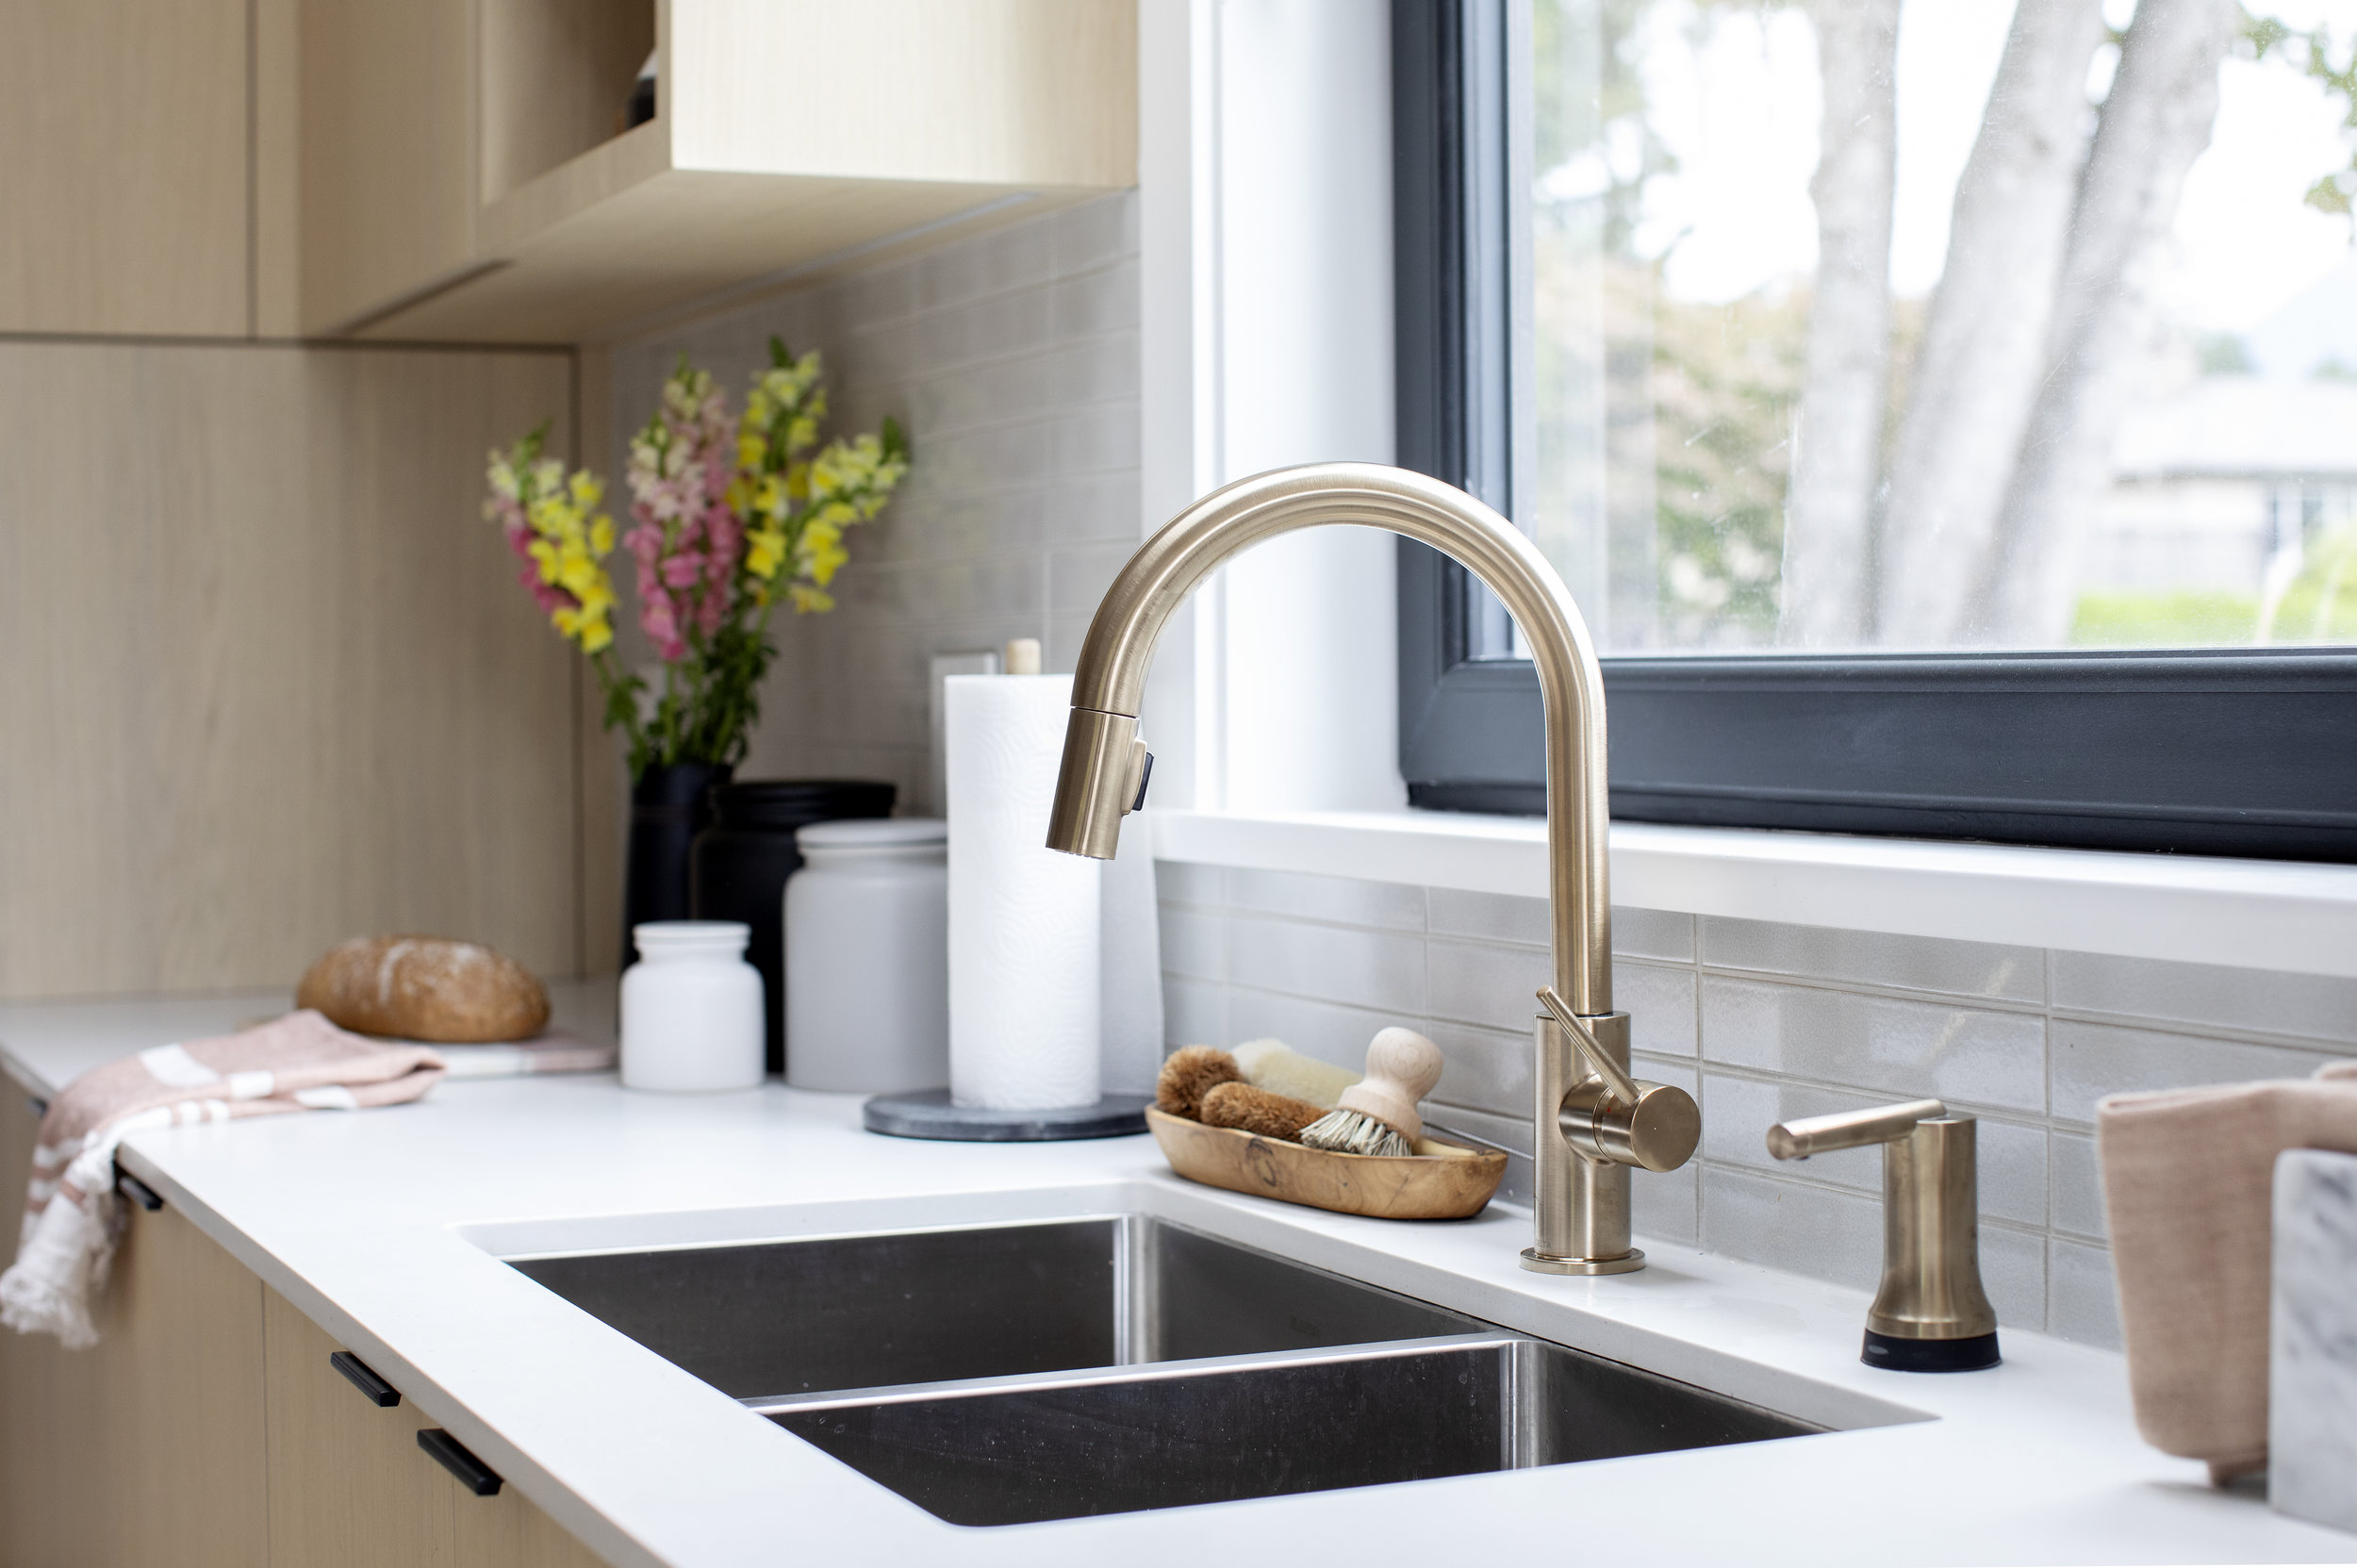 A decorative gold faucet adorns stainless steel double sinks